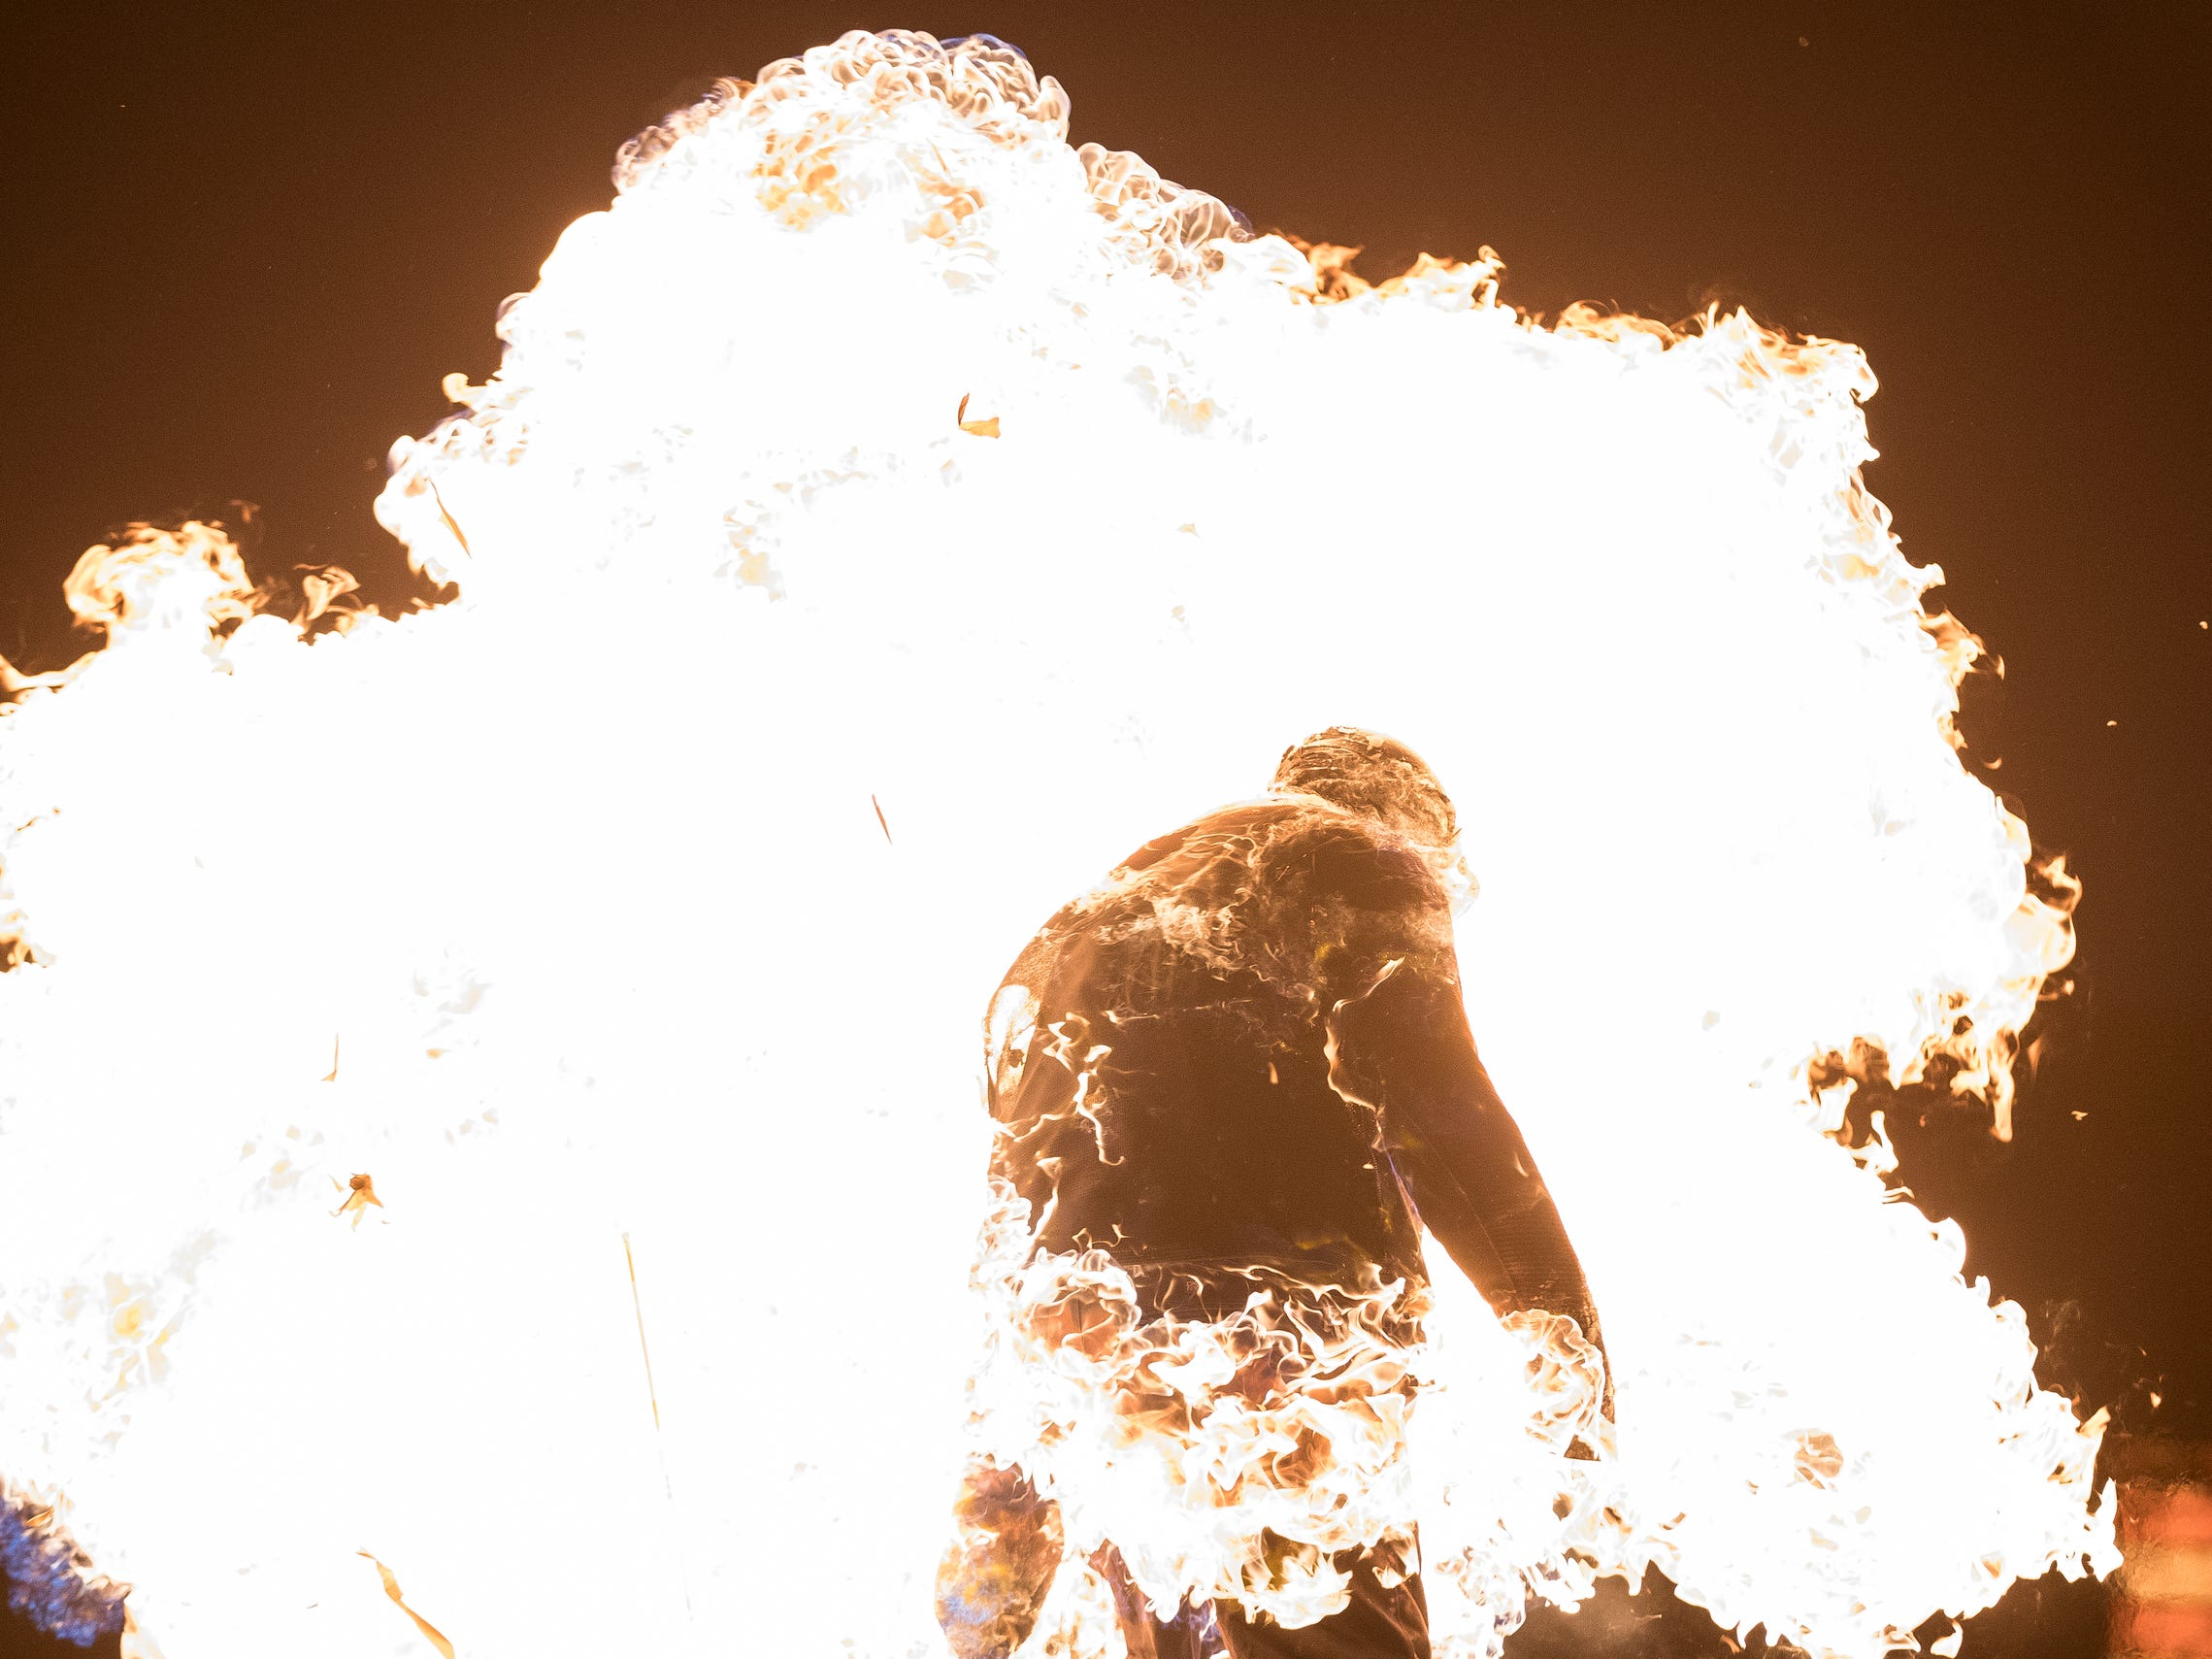 Stuntman Schuyler White runs into balloons filled with explosives after he attempts to break the World Record of most consecutive jumping jacks with full-body burn at the Veterans Park in Hamtramck, Saturday, Feb. 23, 2019. The world record is 30, White finished with 12 jumps.